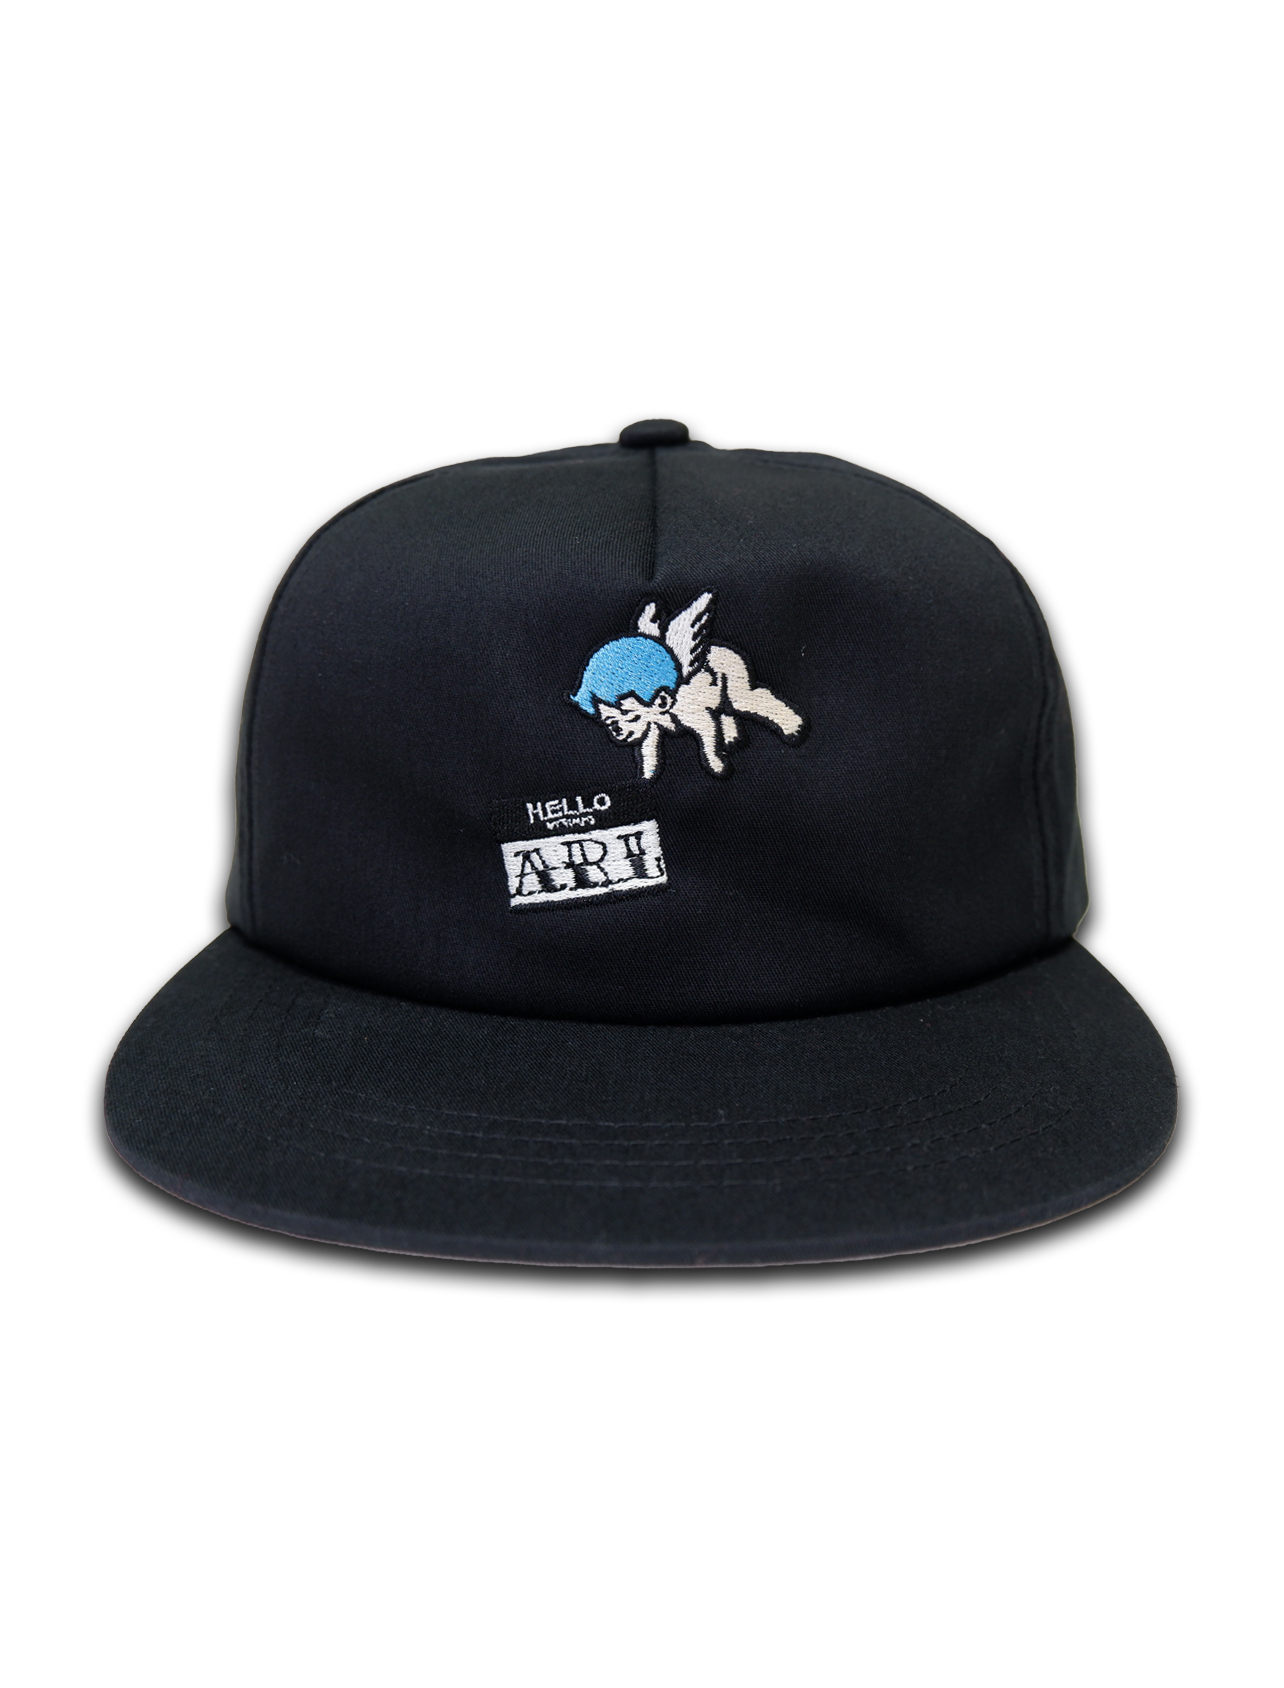 ANGEL MISCHIEF CAP black